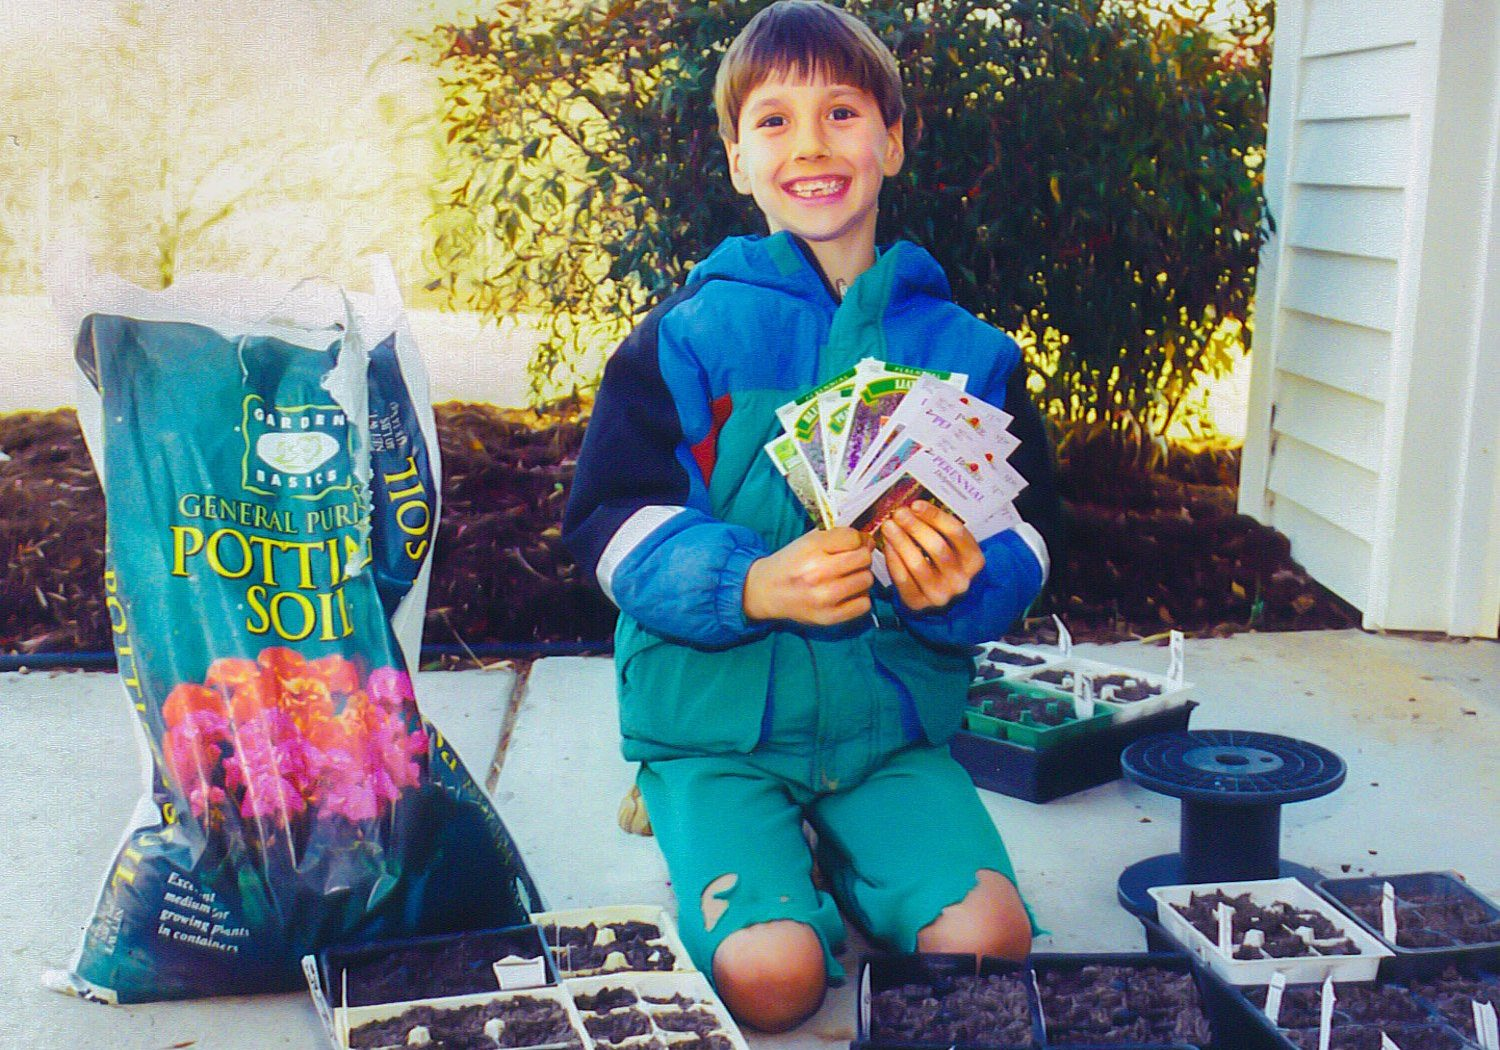 Young boy kneeling as he proudly displays a fanned out display of flower seed packets